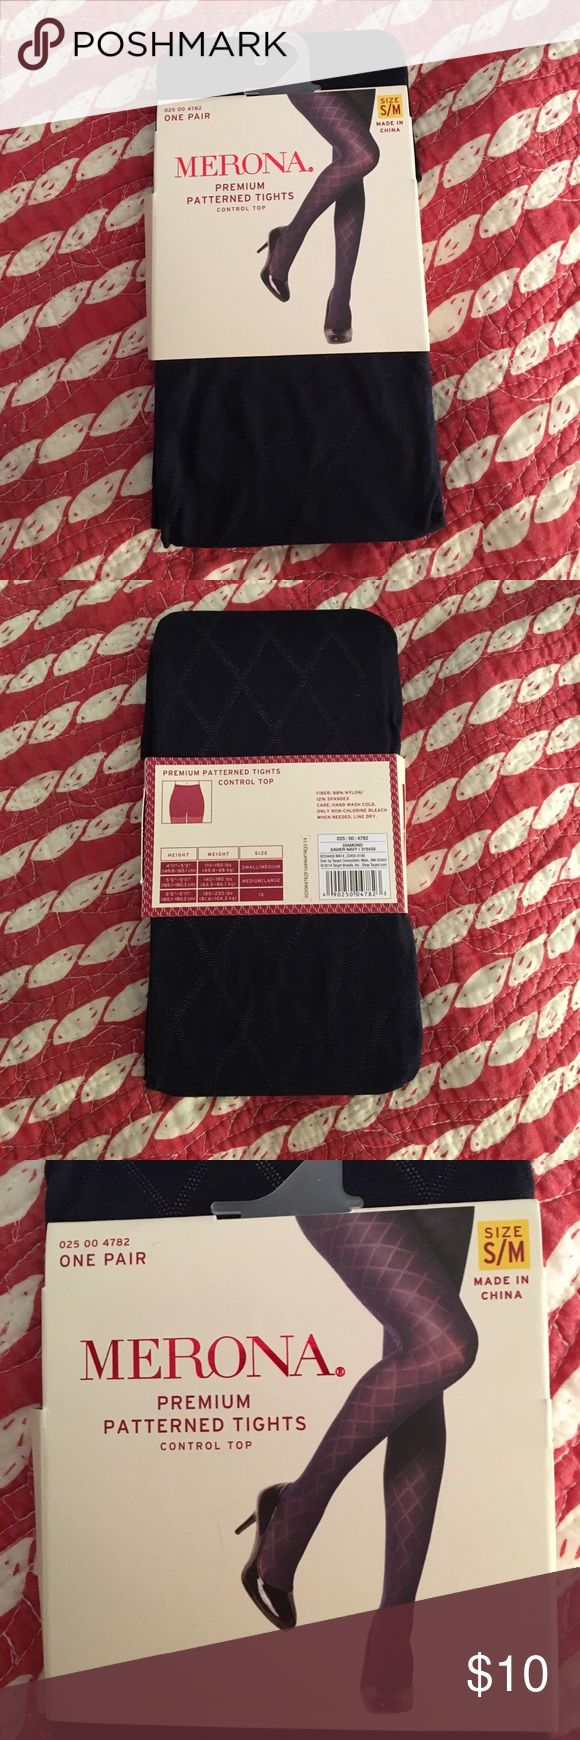 Navy Tights Navy patterned tights. Size s/m. Never worn Merona Accessories Hosiery & Socks